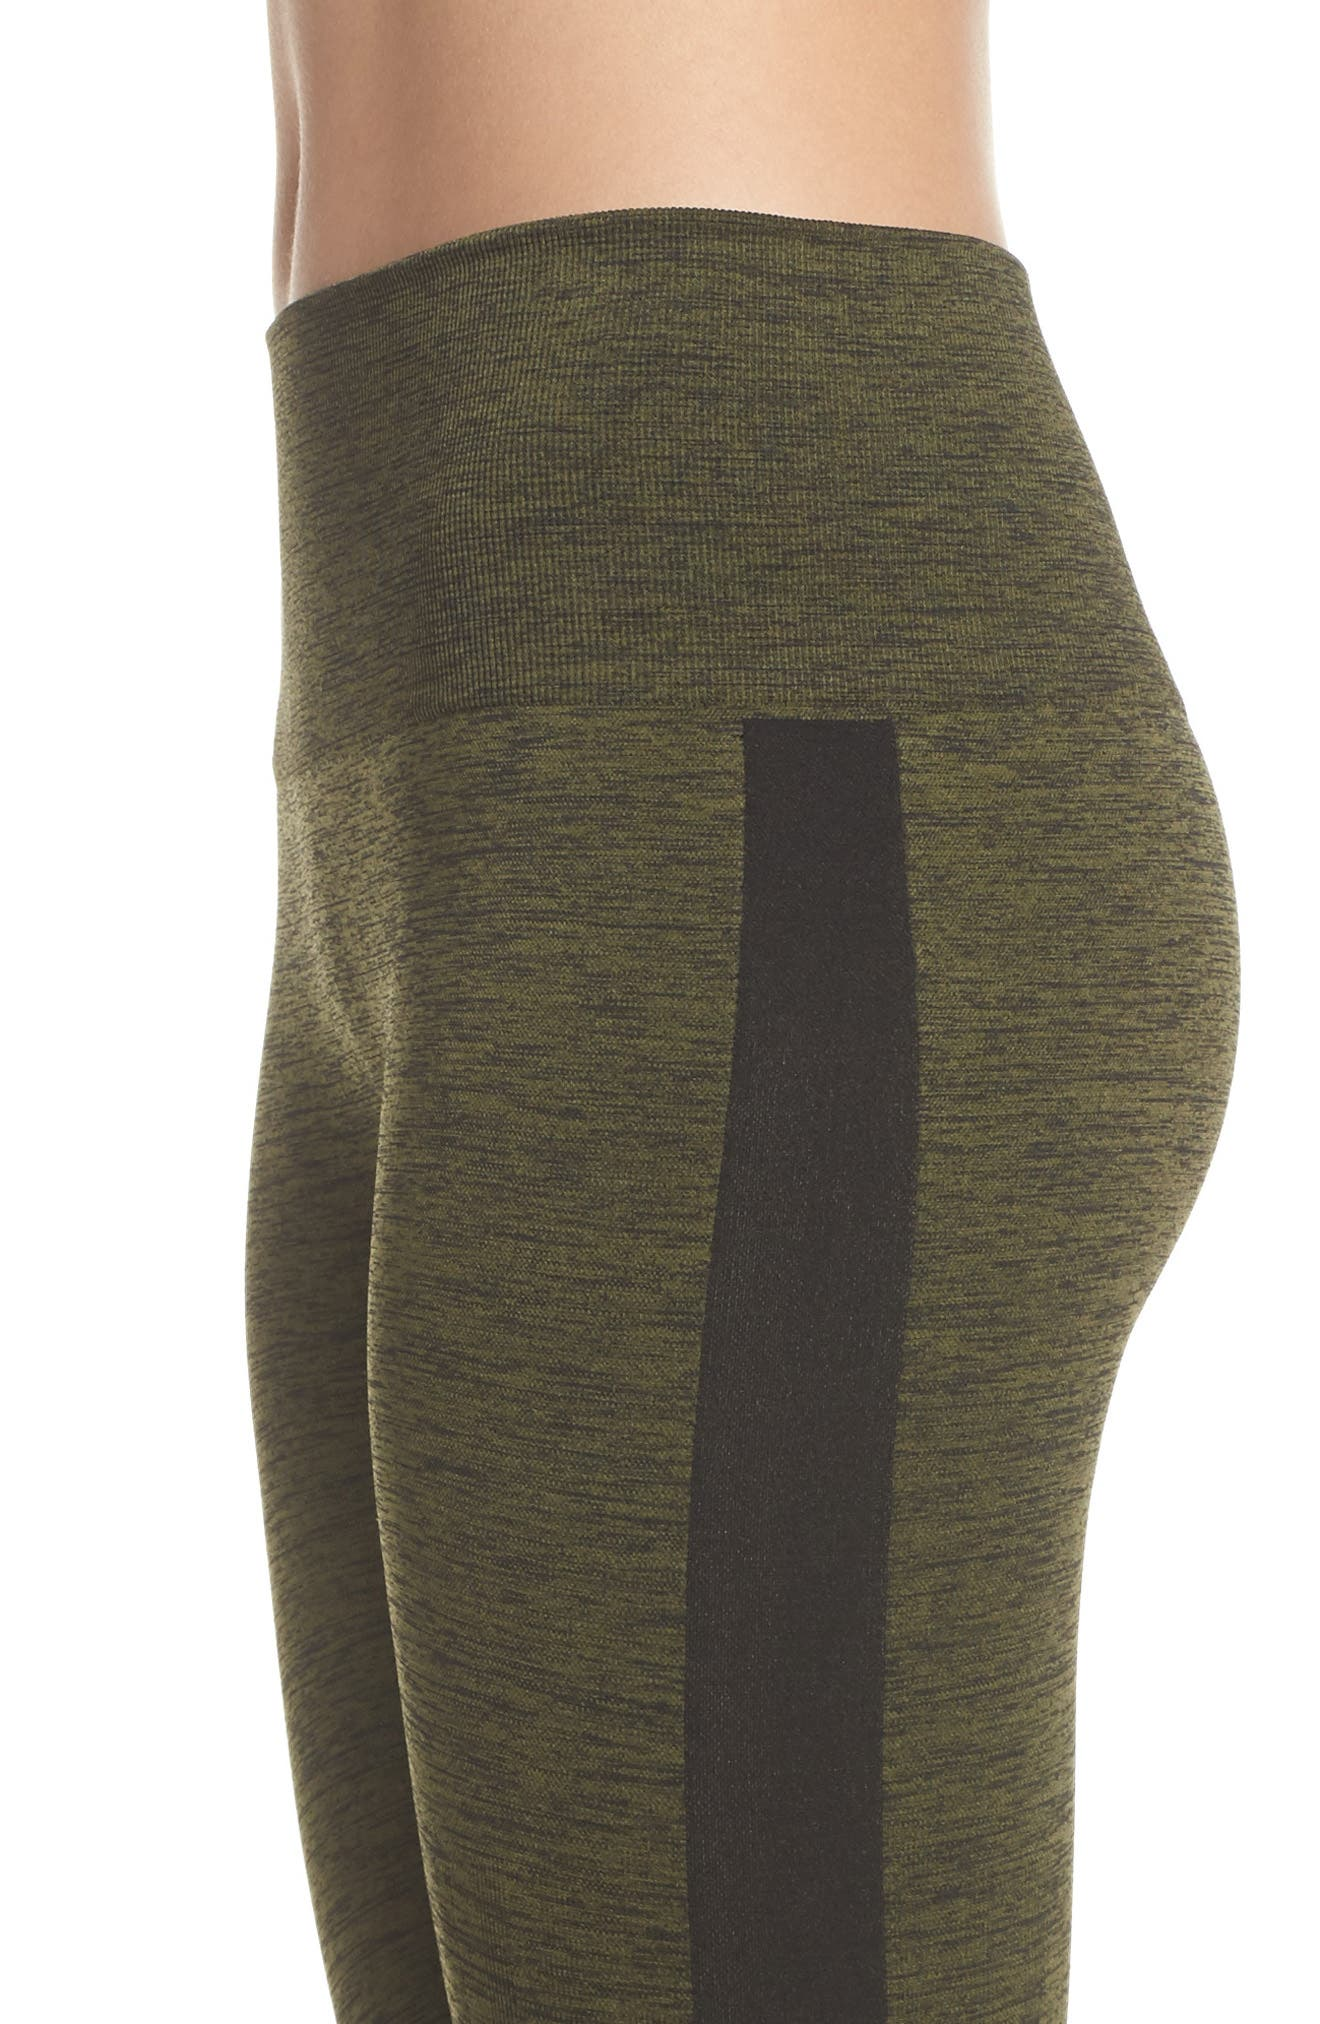 Stamina Capri Leggings,                             Alternate thumbnail 4, color,                             300